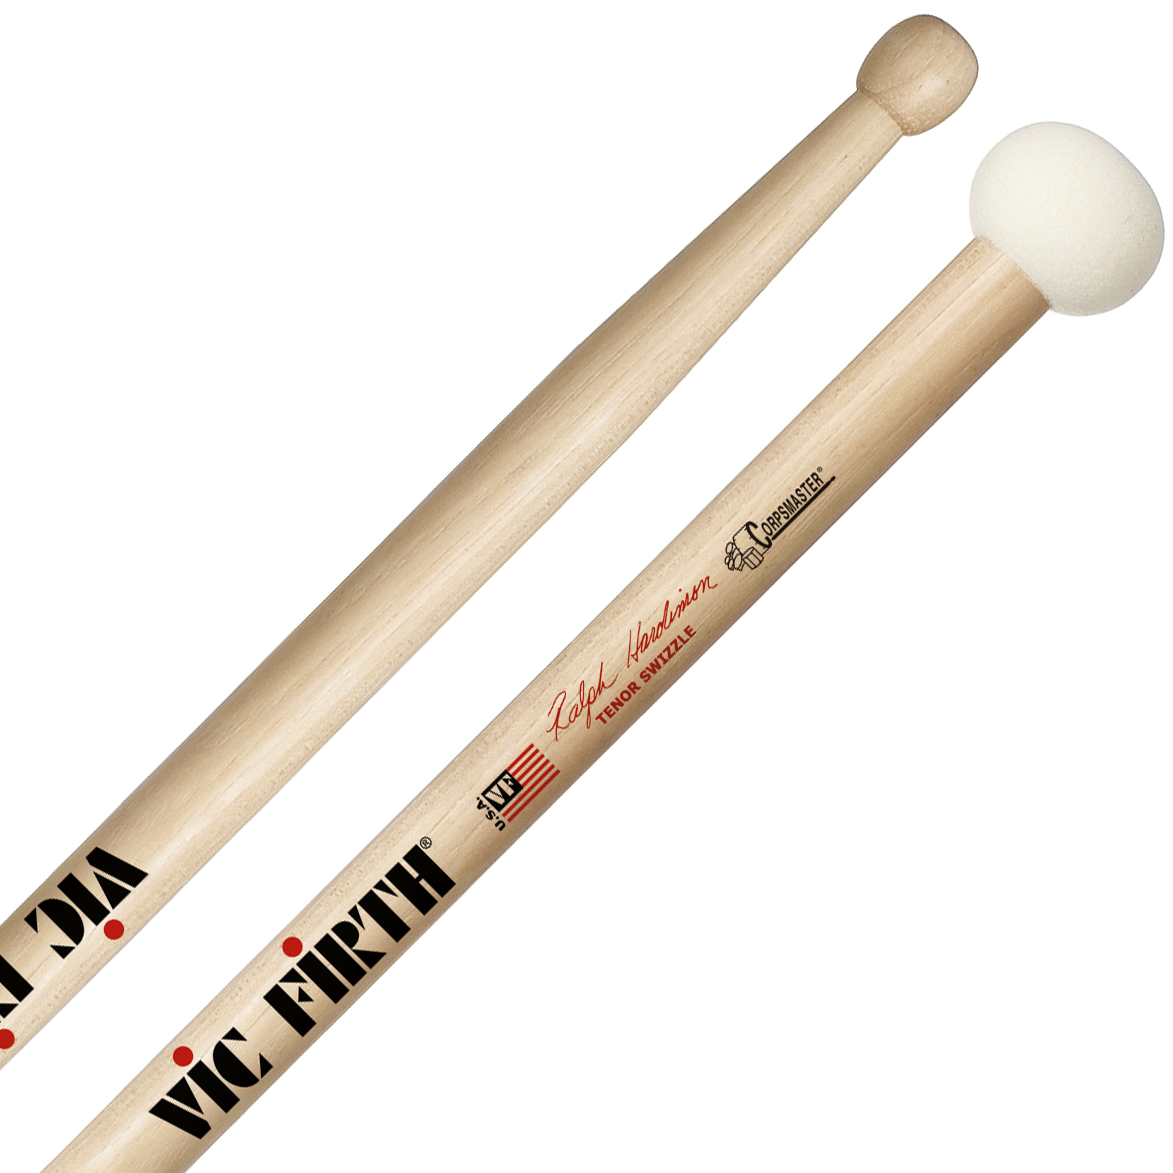 Vic Firth Corpsmaster Swizzle Tenor Sticks Ralph Hardimon